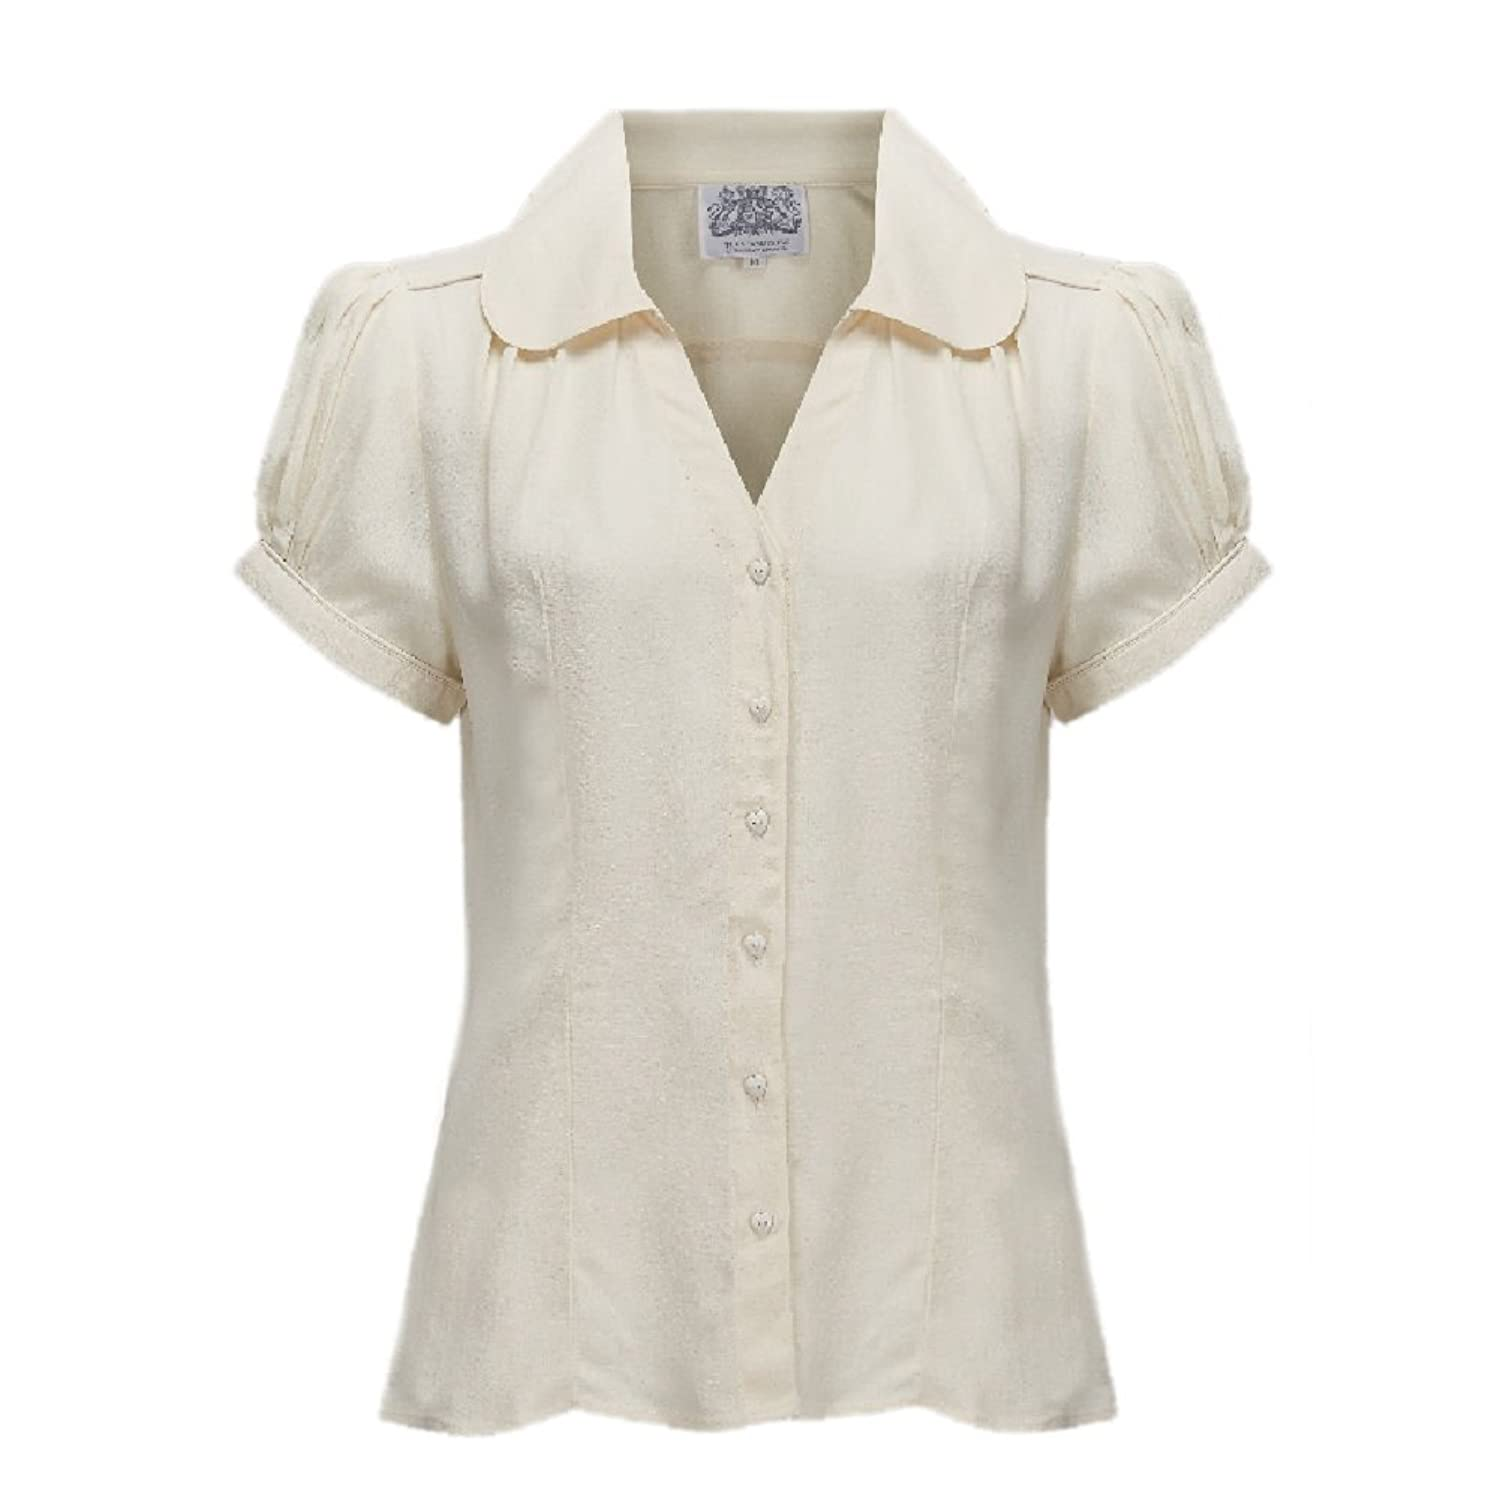 1940s Blouses and Tops Seamstress Of Bloomsbury 1940s Cream Crepe de Chine Judy Blouse £39.99 AT vintagedancer.com